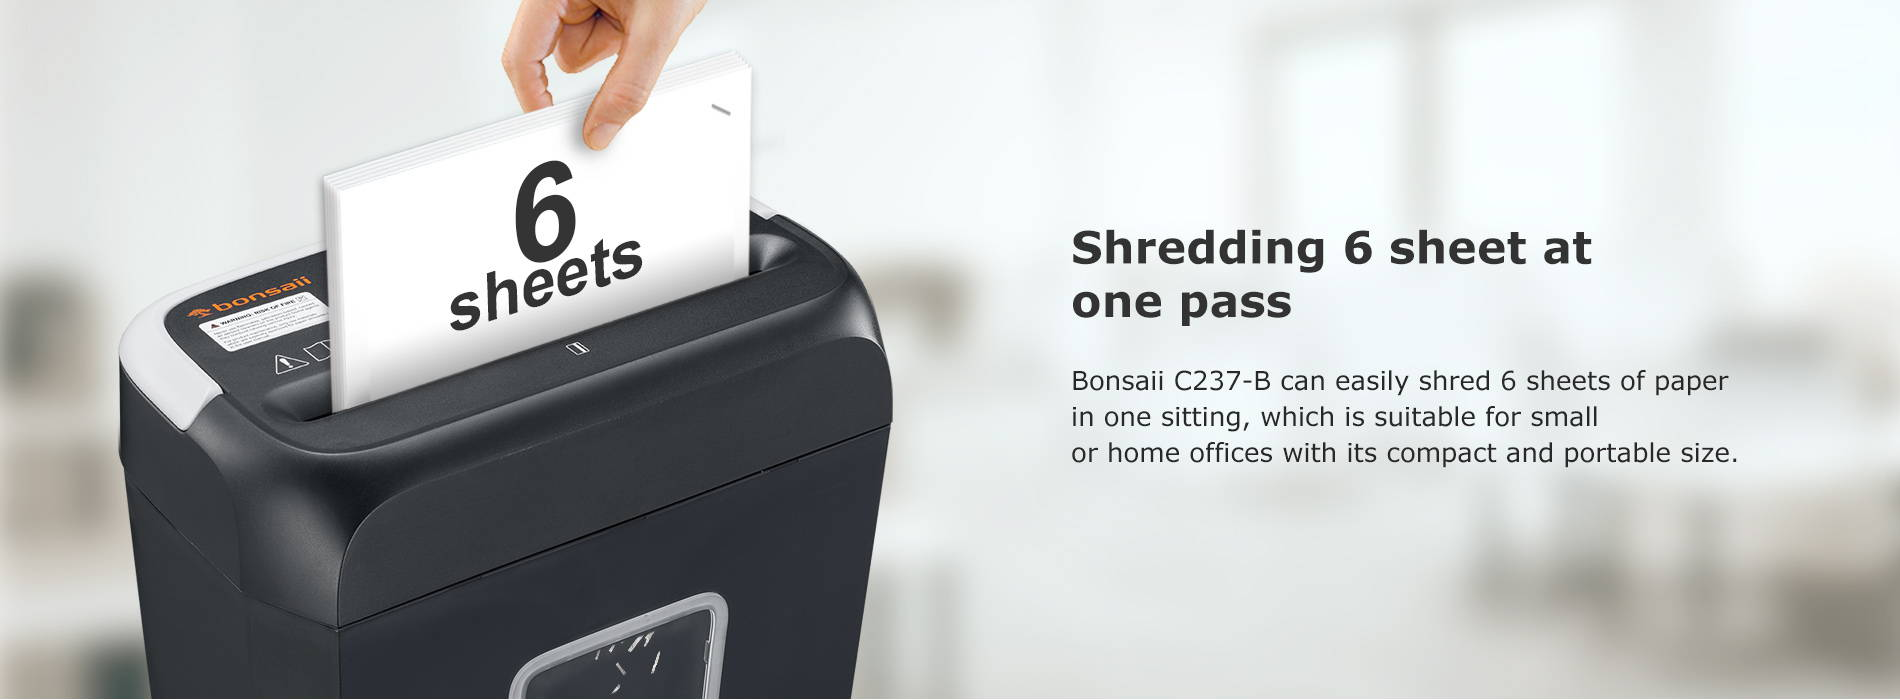 Shredding 6 sheet at one pass Bonsaii C237-B can easily shred 6 sheets of paper in one sitting, which is suitable for small or home offices with its compact and portable size.